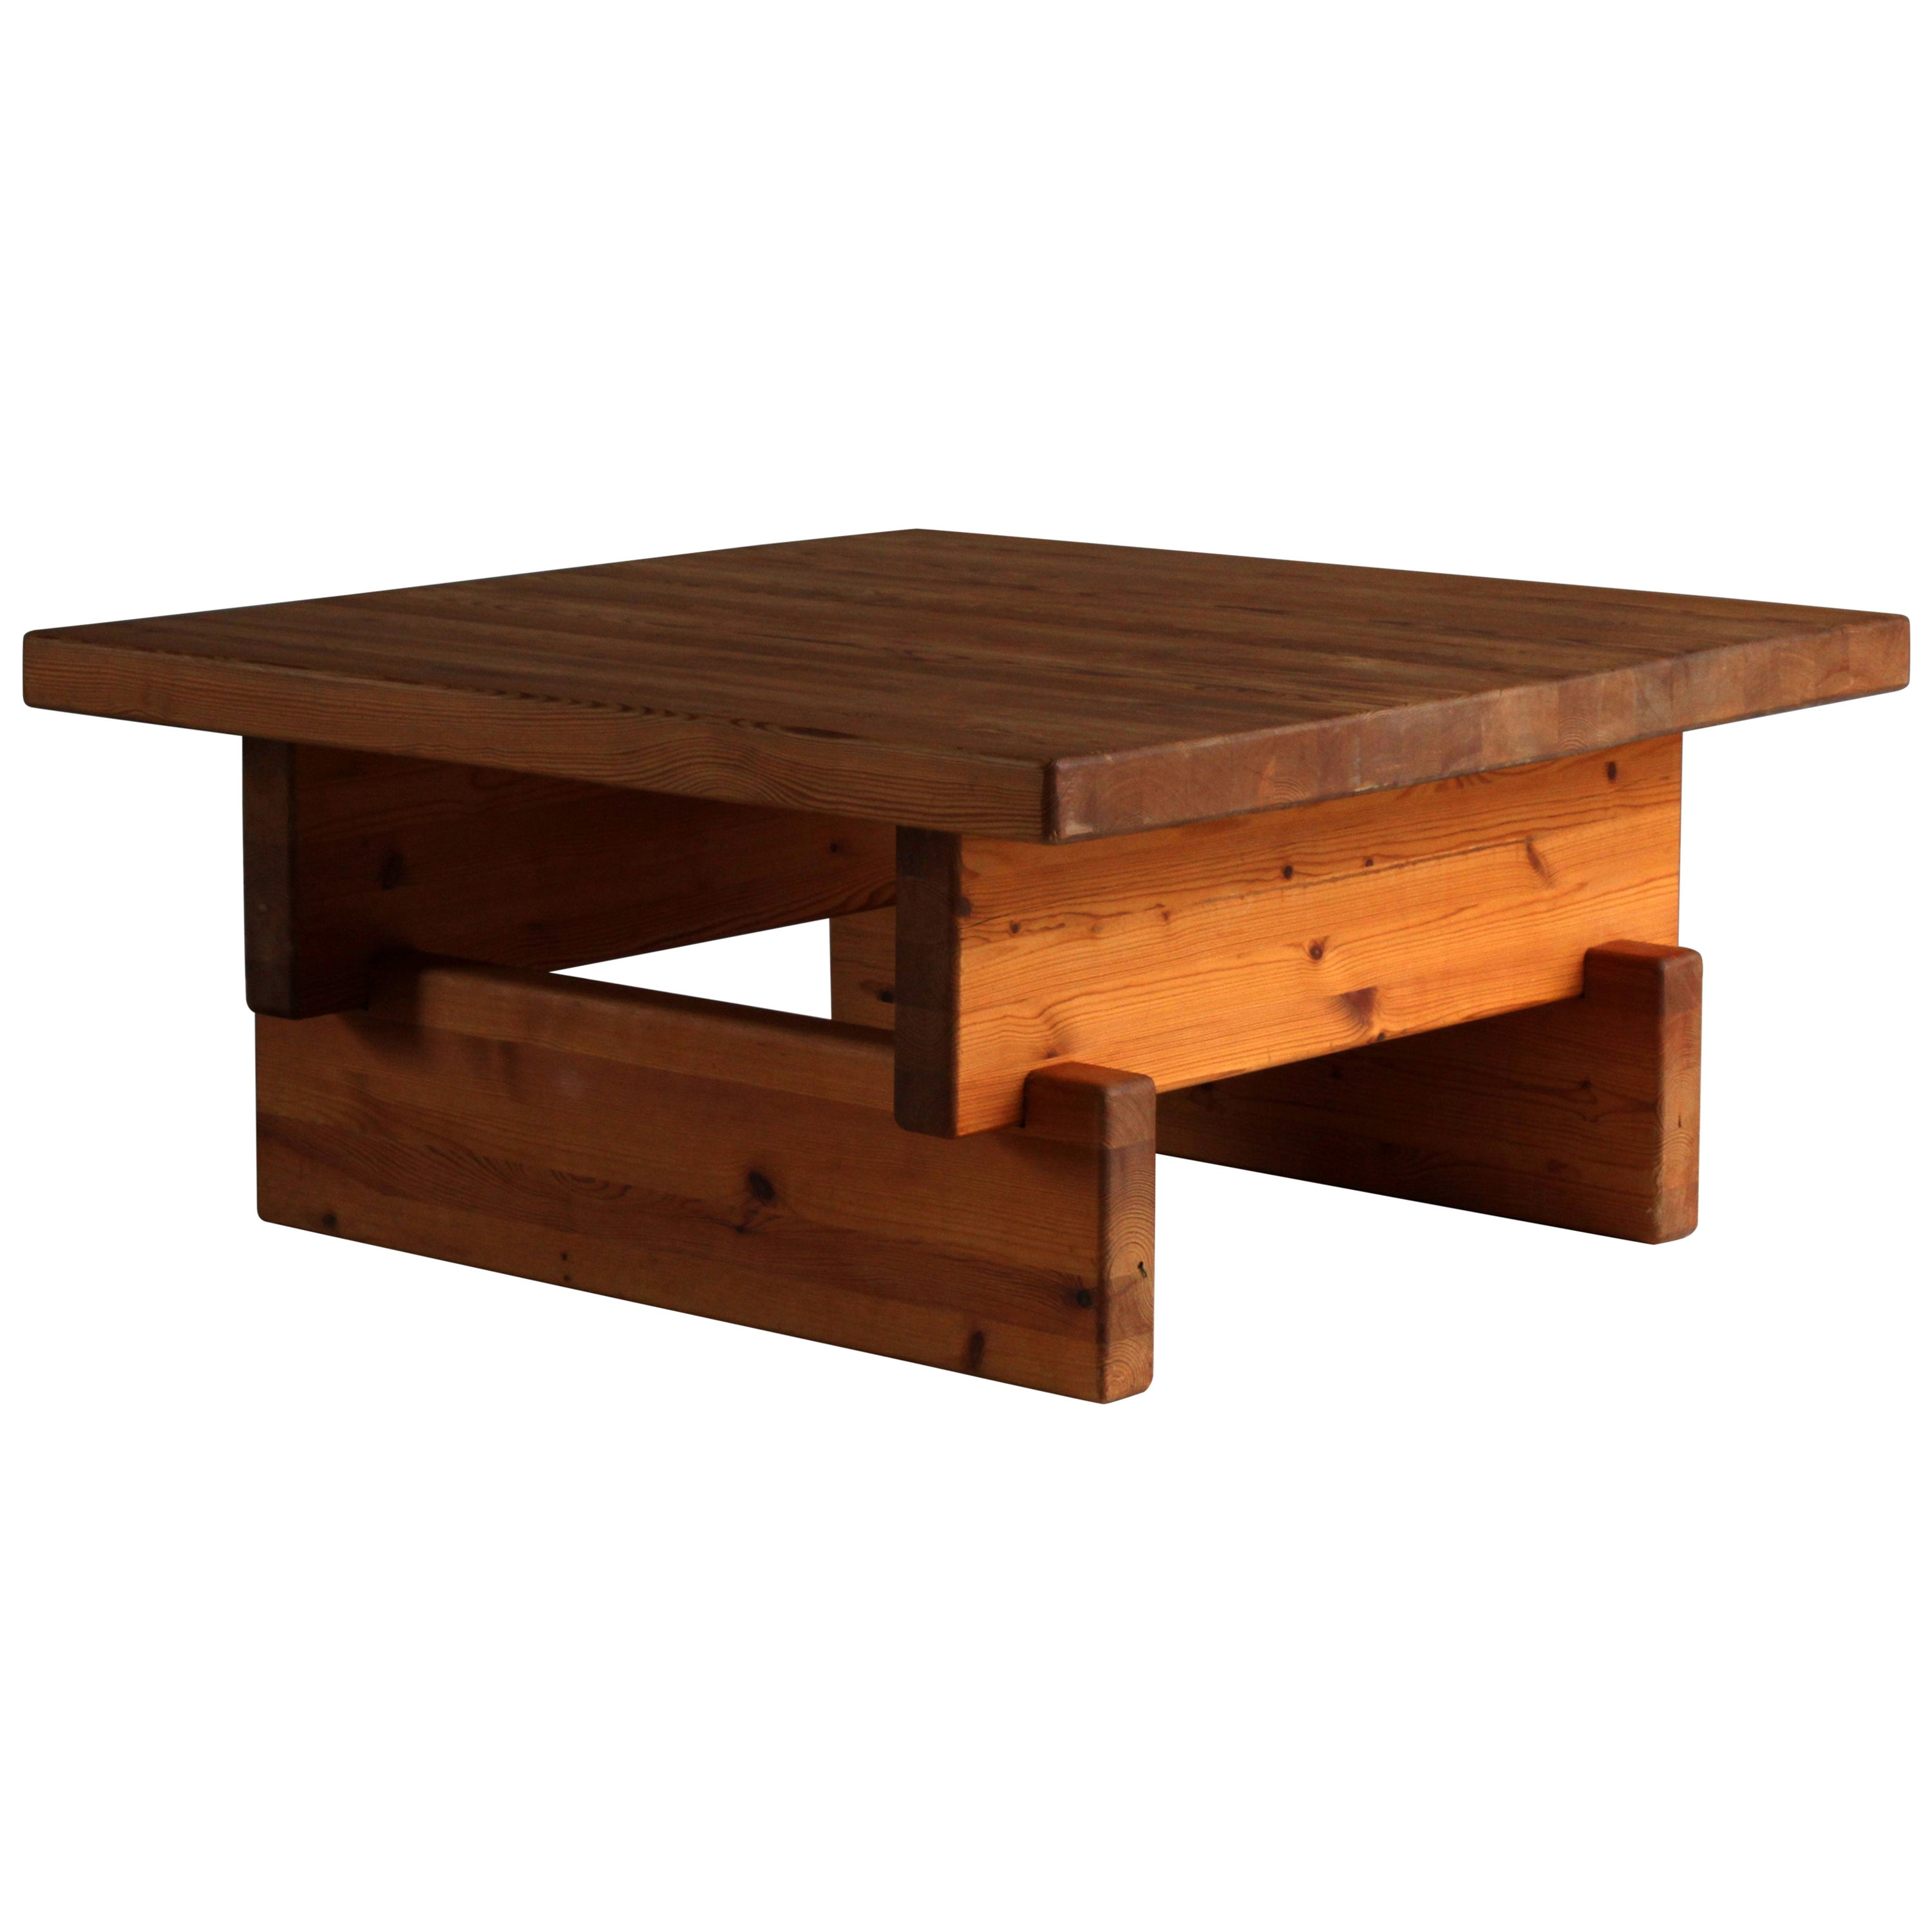 Roland Wilhelmsson (attributed) Coffee Table, Solid Pine, 1960s, Sweden